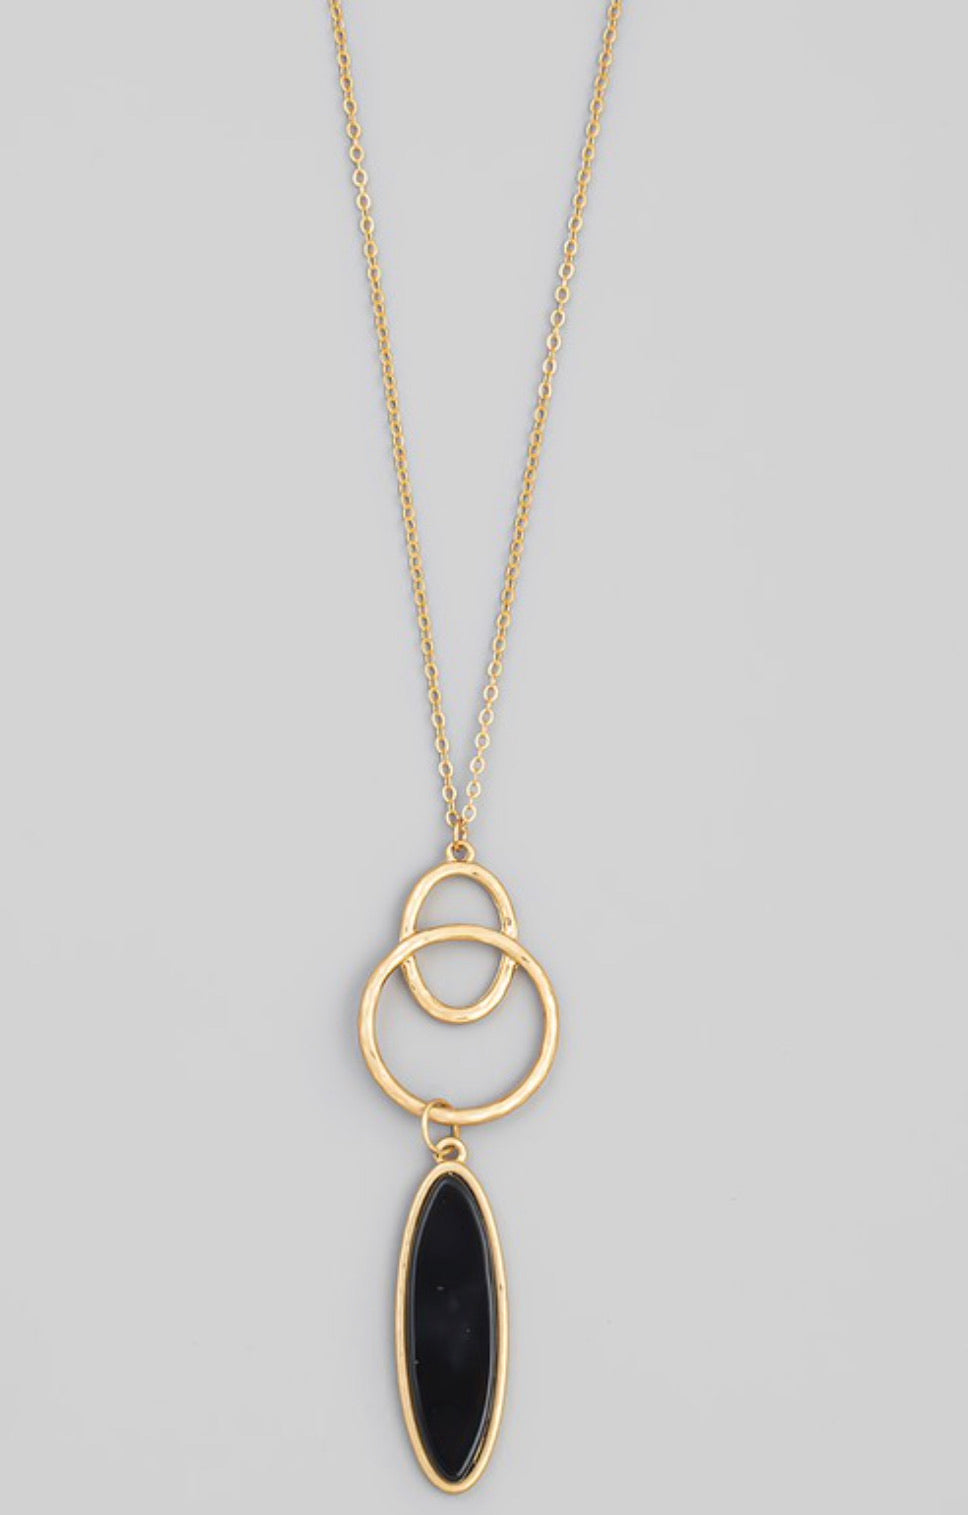 Semiprecious Oval Stone Pendant Necklace - 4 colors